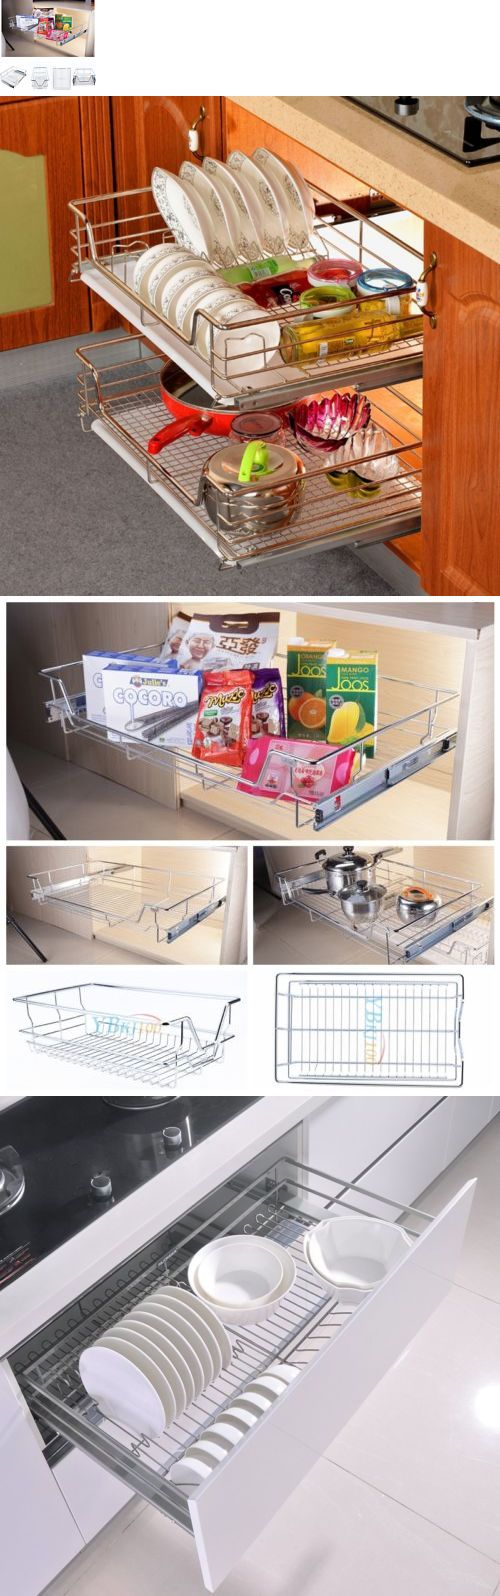 White tilt out clothes storage basket bin bathroom drawer ebay - Racks And Holders 46283 Shelf And Cabinet Sliding Drawer Organizer Metal Pull Out Storage Wire